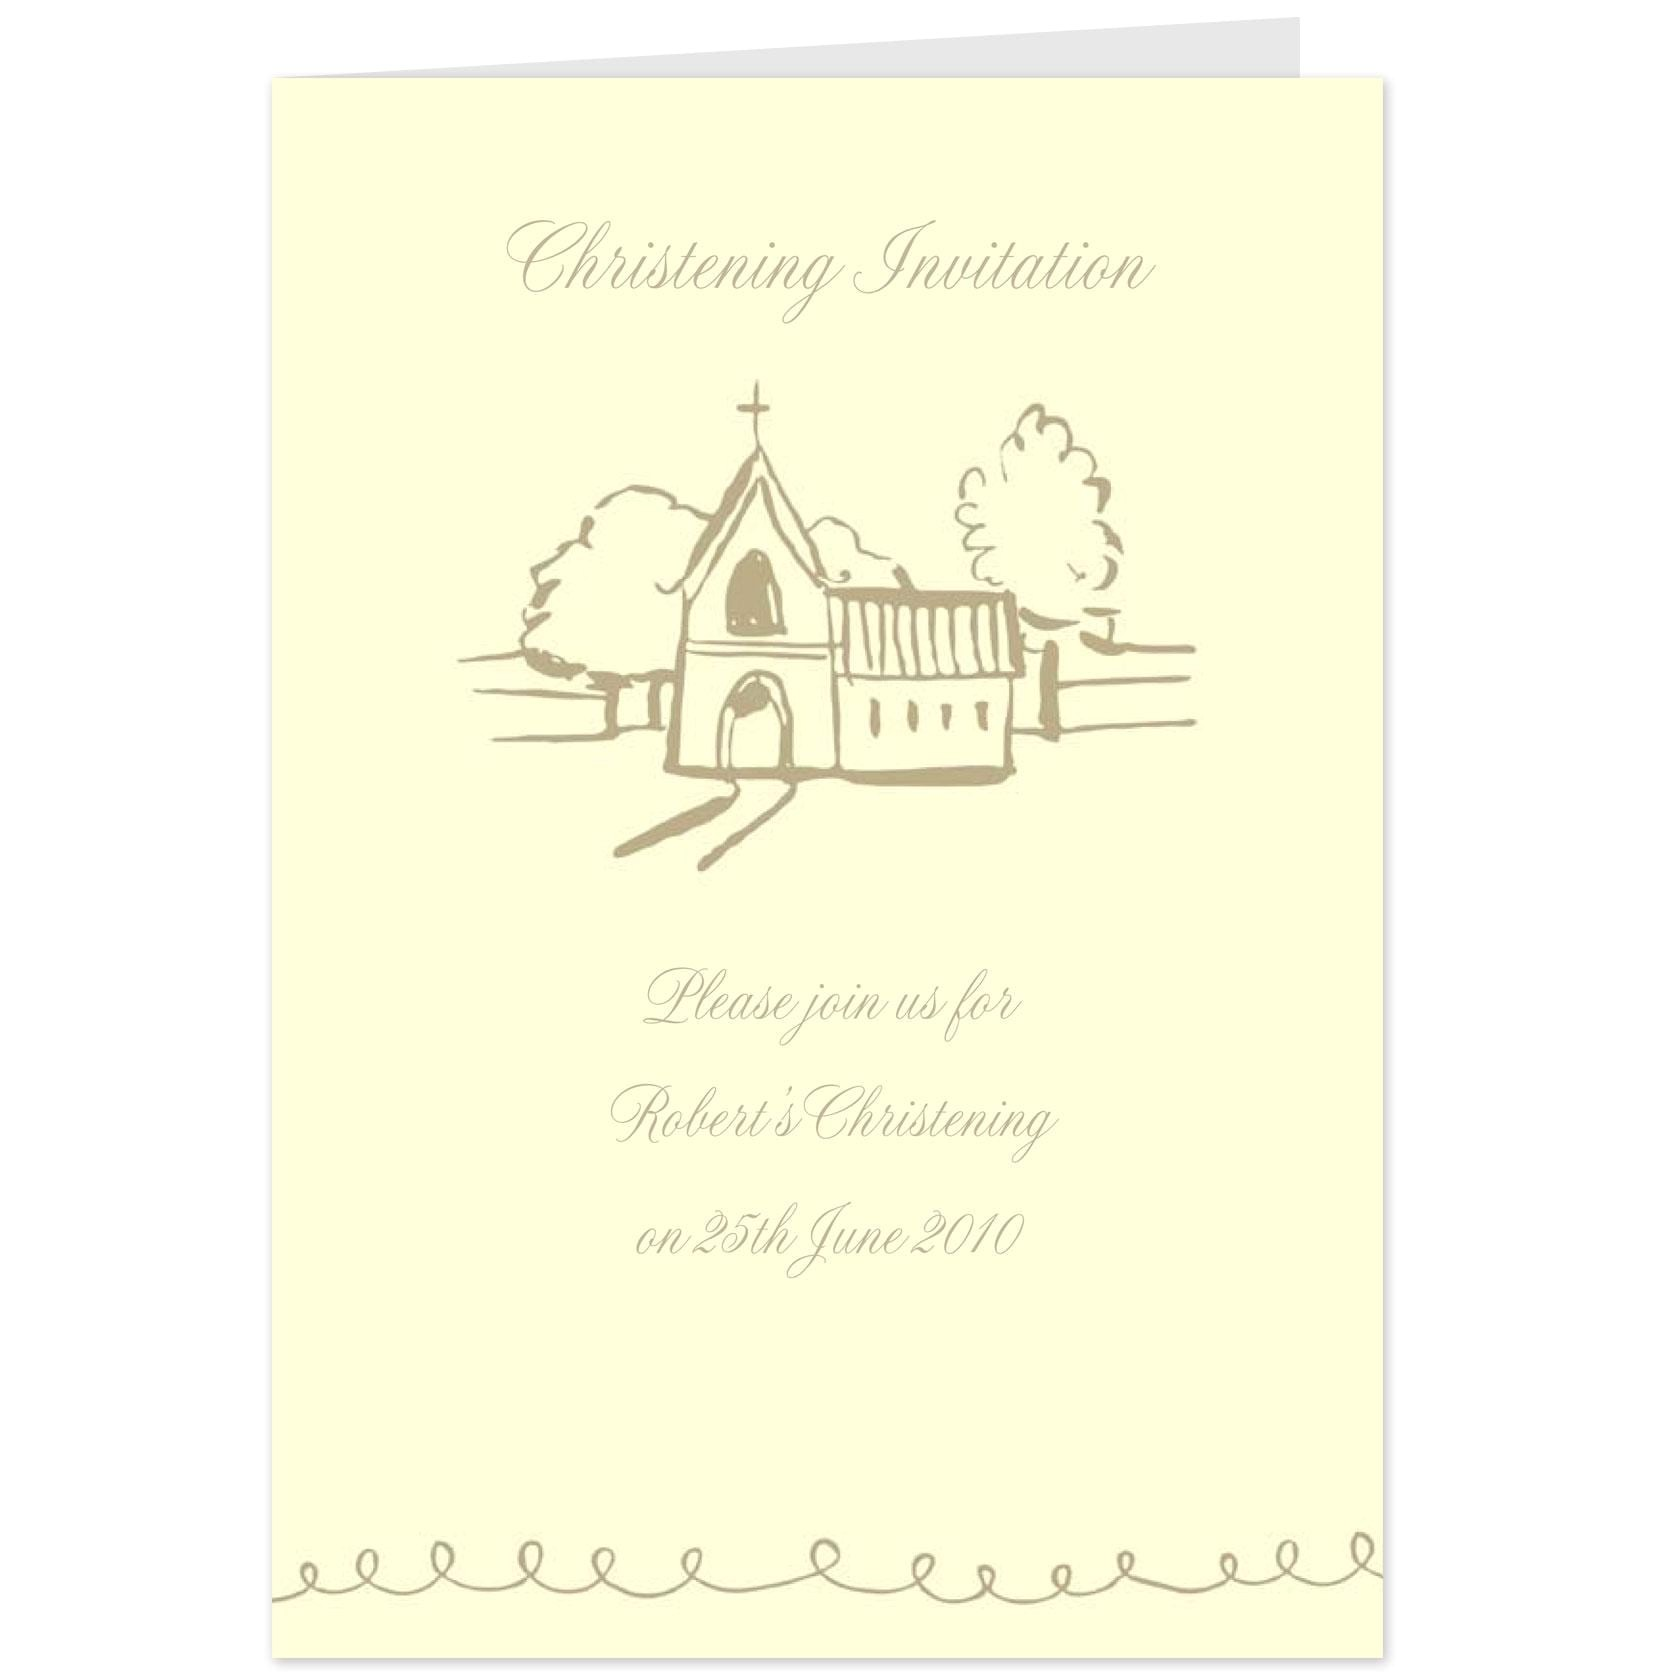 hallmark christening invitation